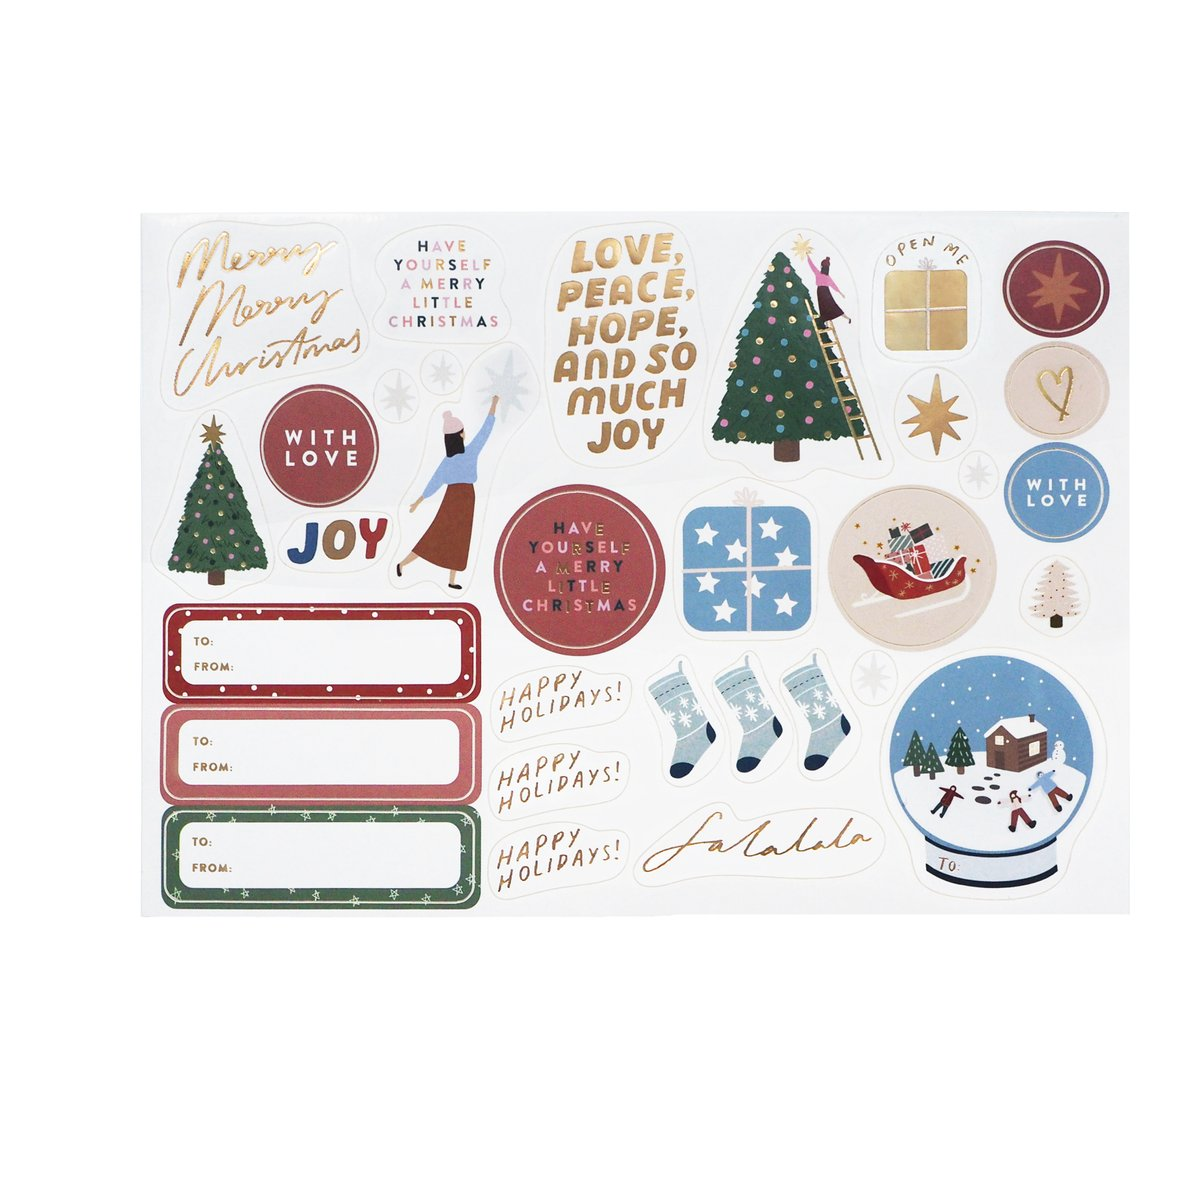 Merry Christmas Images.Merry Christmas Sticker Labels